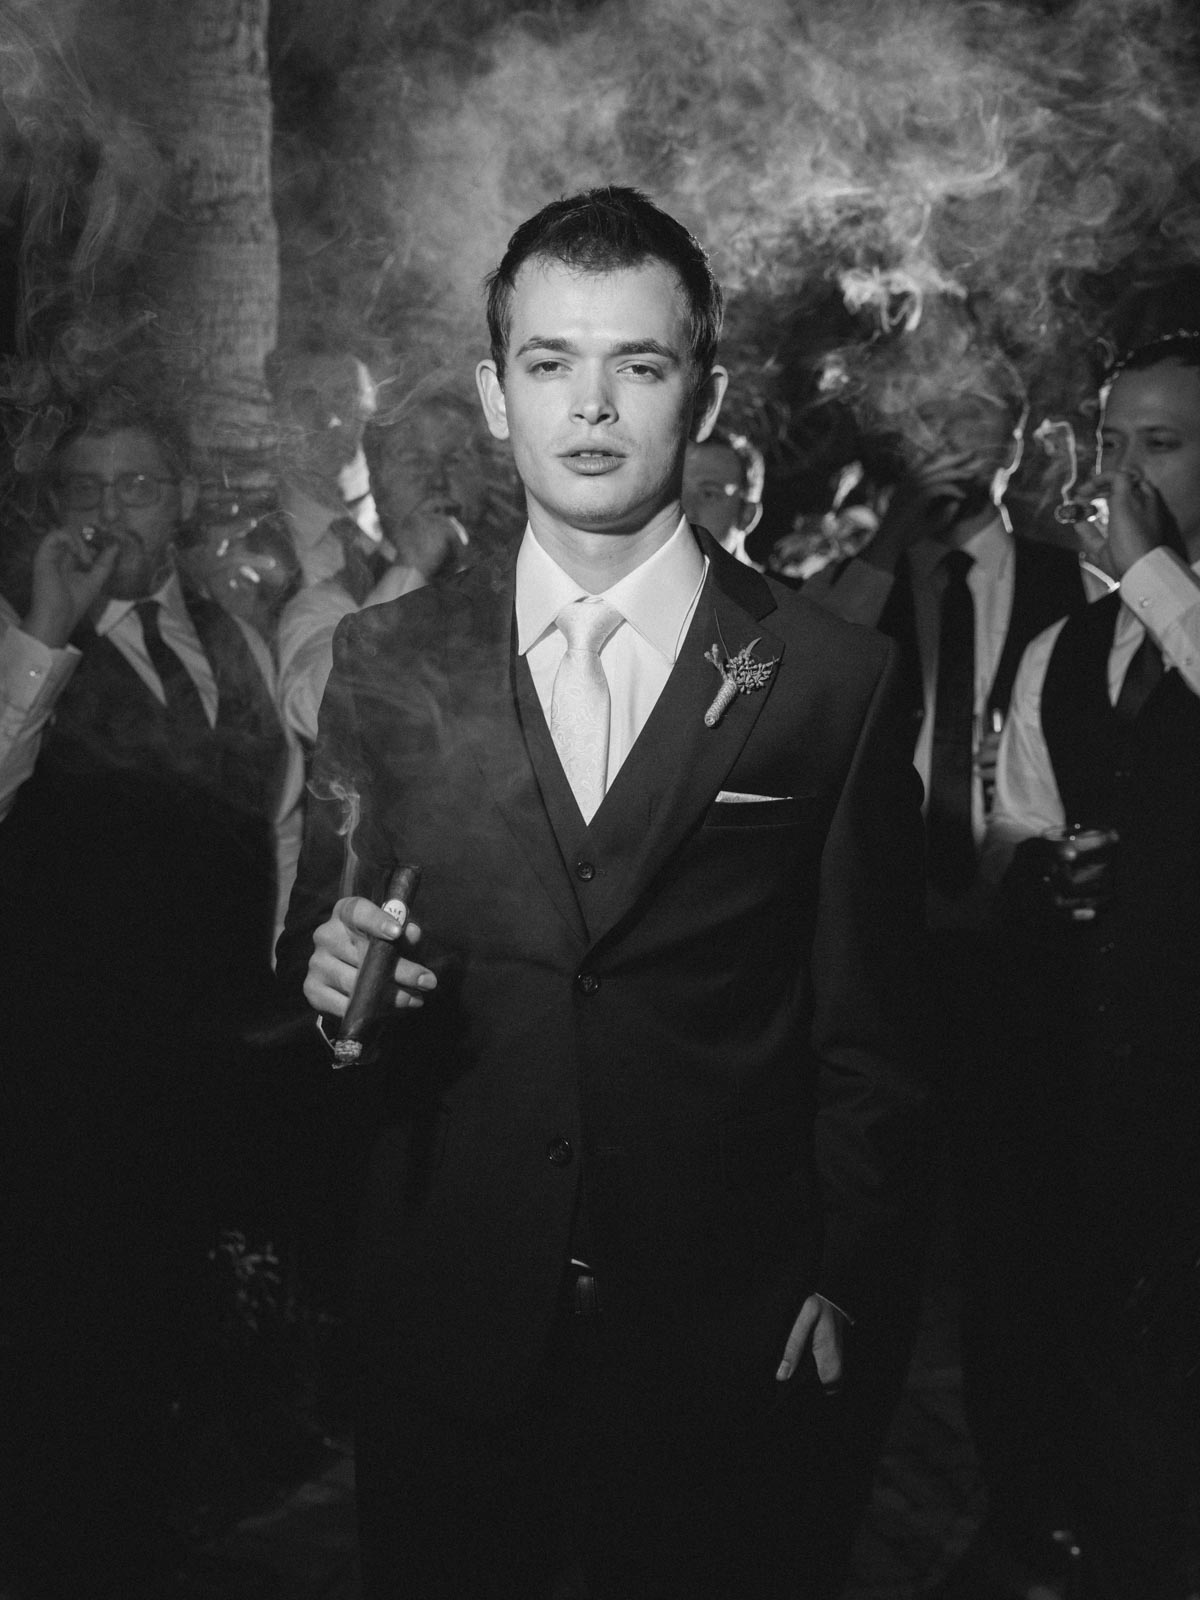 groom-cigar-smoke.jpg